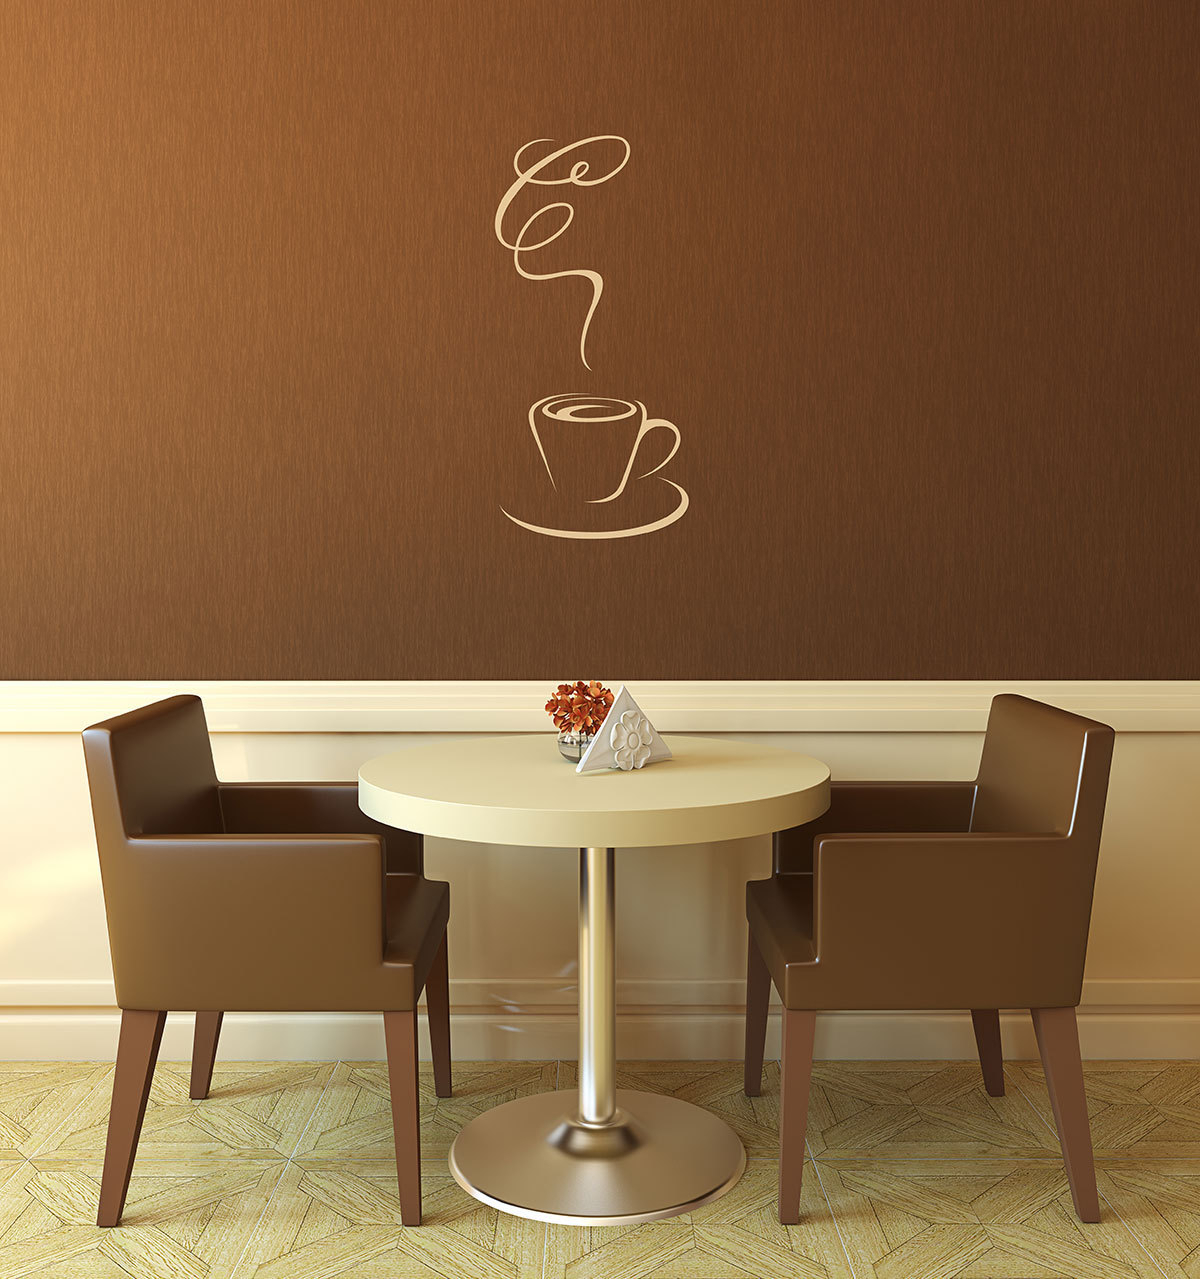 Coffee Wall Decal Coffee Shop Coffee Lover Kitchen Wall (Gallery 5 of 20)